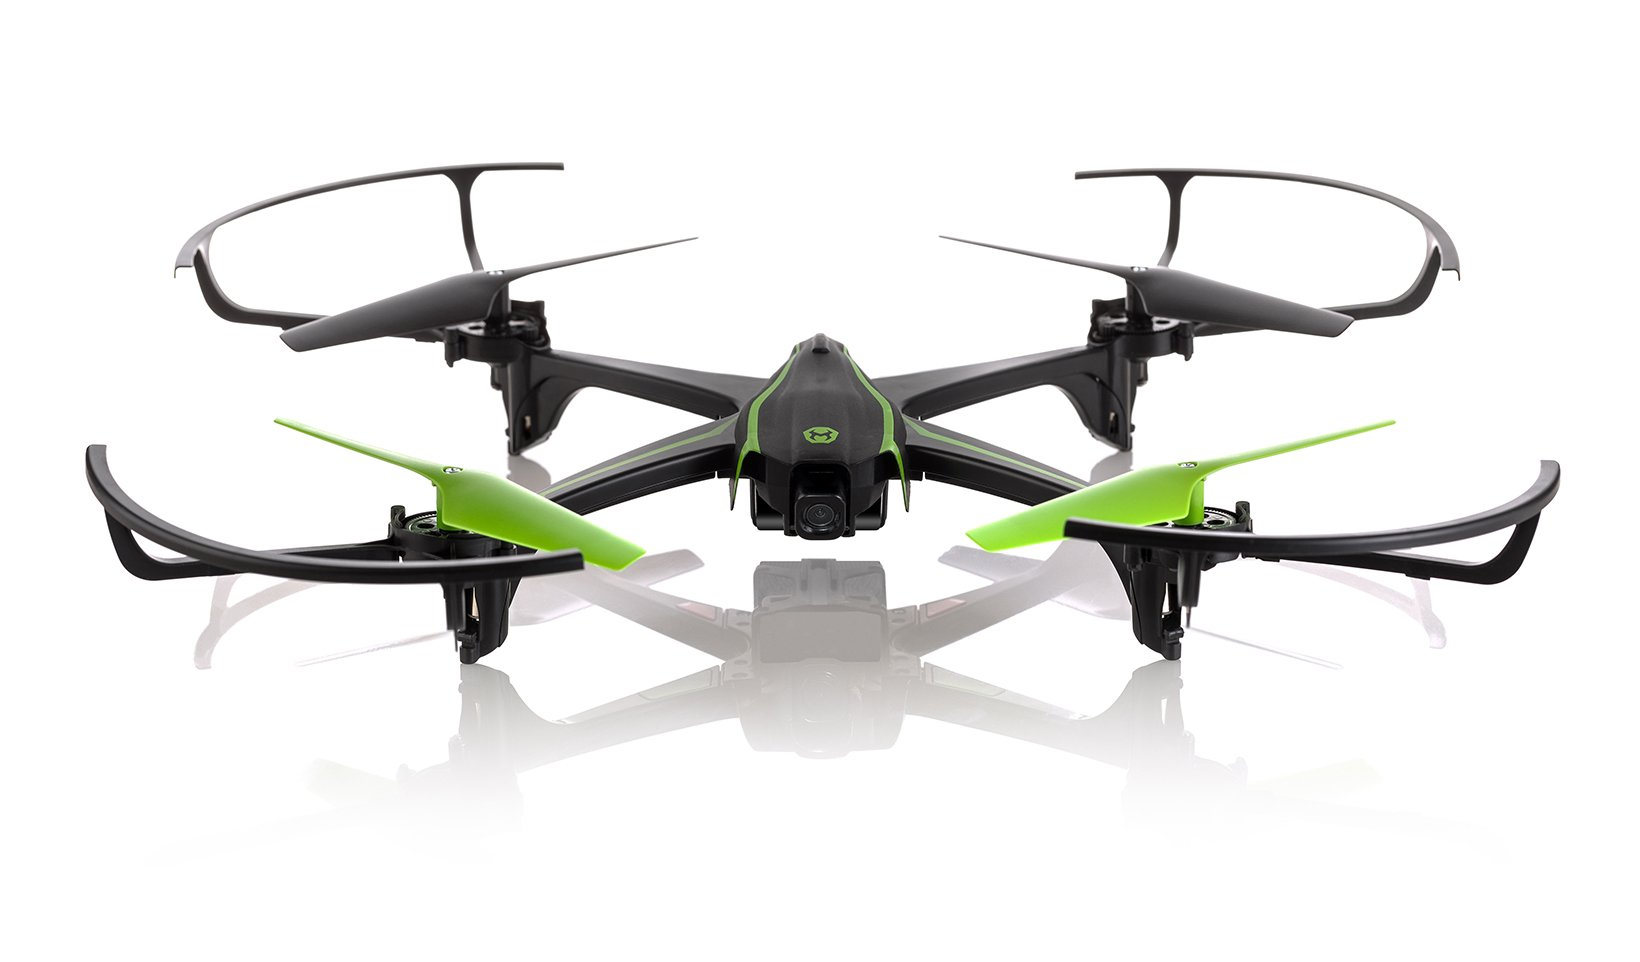 Sky Viper v2450HD Streaming Drone with Flight Assist & 2X Improved Flight Range - 2017 Edition by Sky Viper (Image #3)